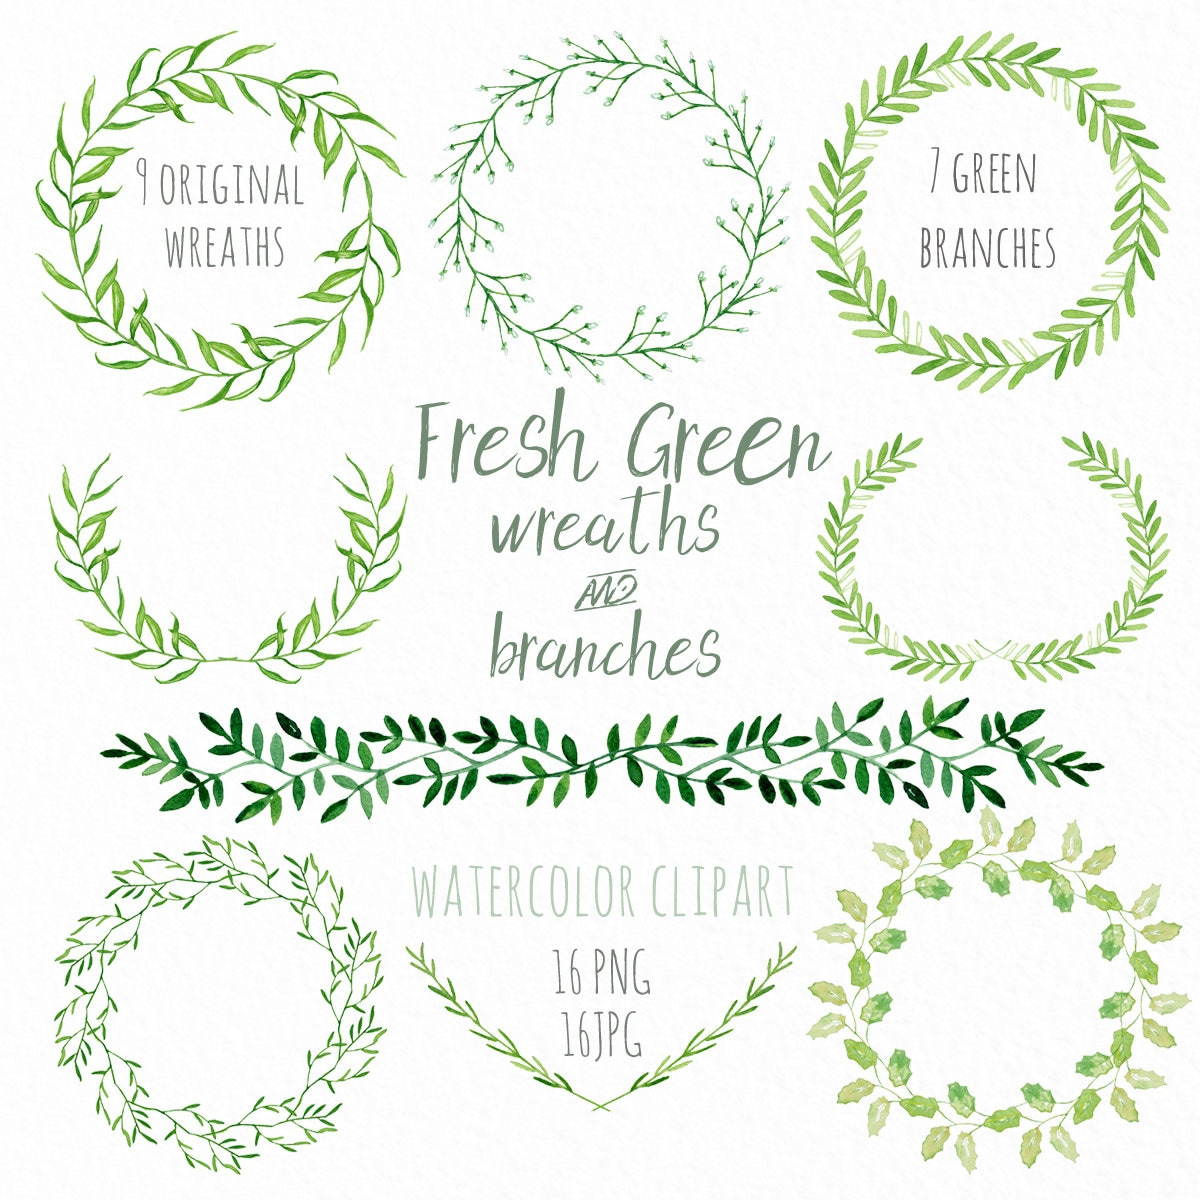 Fresh Green Wreaths And Branches. Watercolor Clip Art Hand